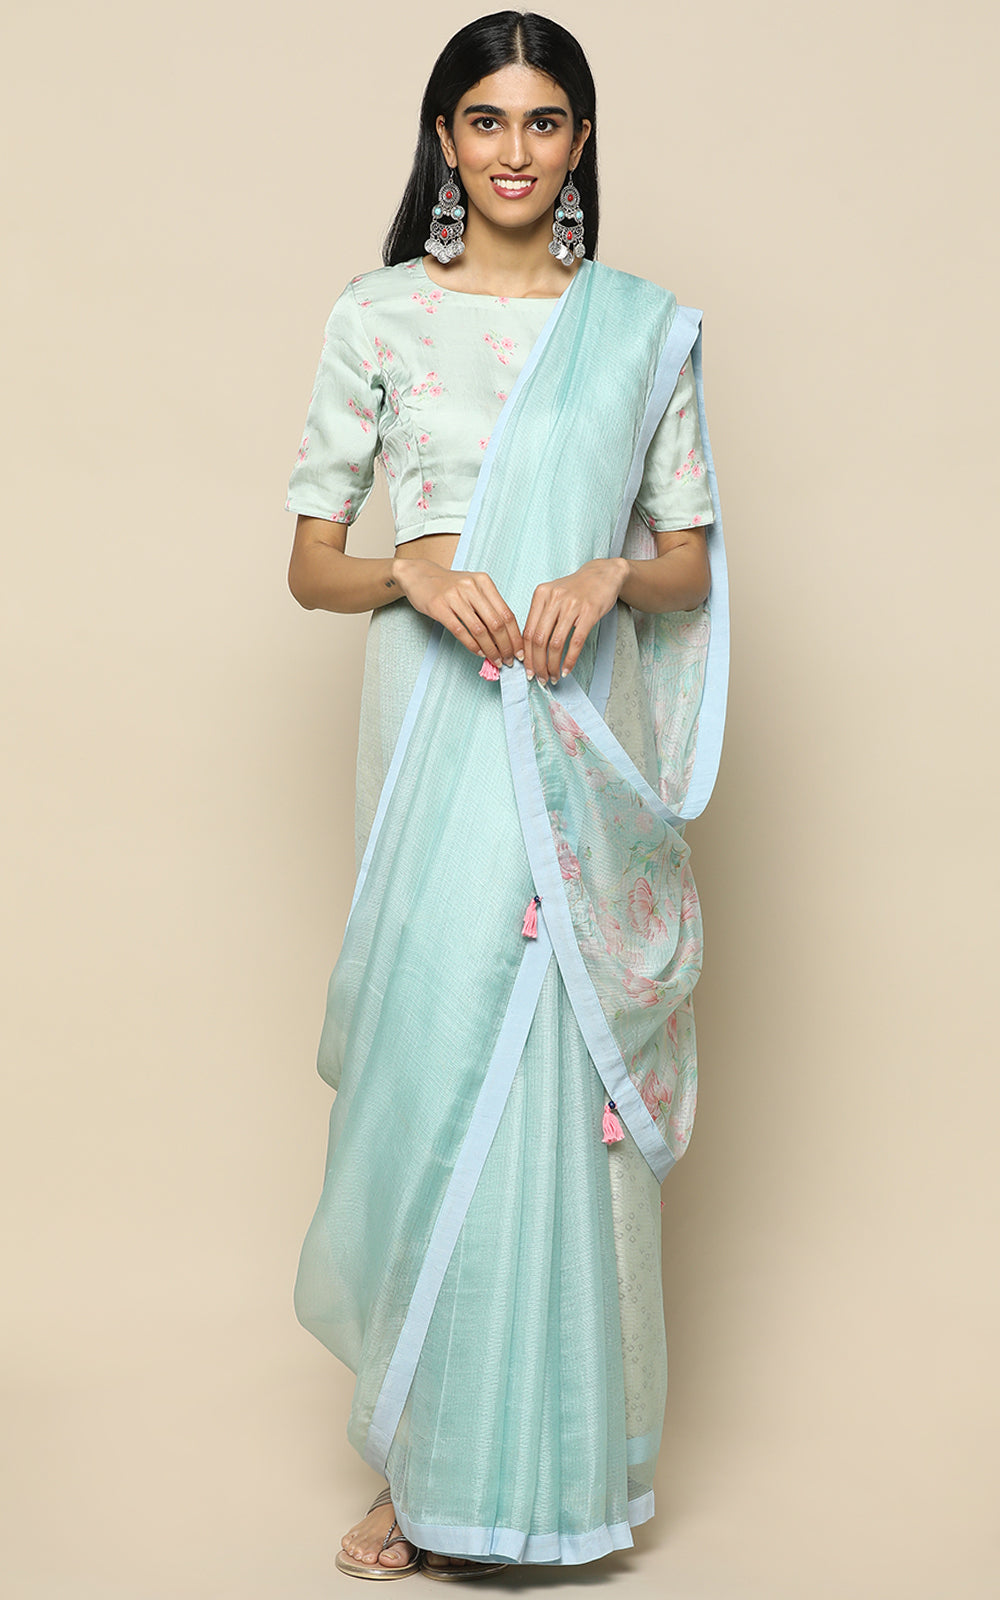 LIGHT BLUE KOTA SILK SAREE WITH PRINTED FLOWERS IN PASTELS